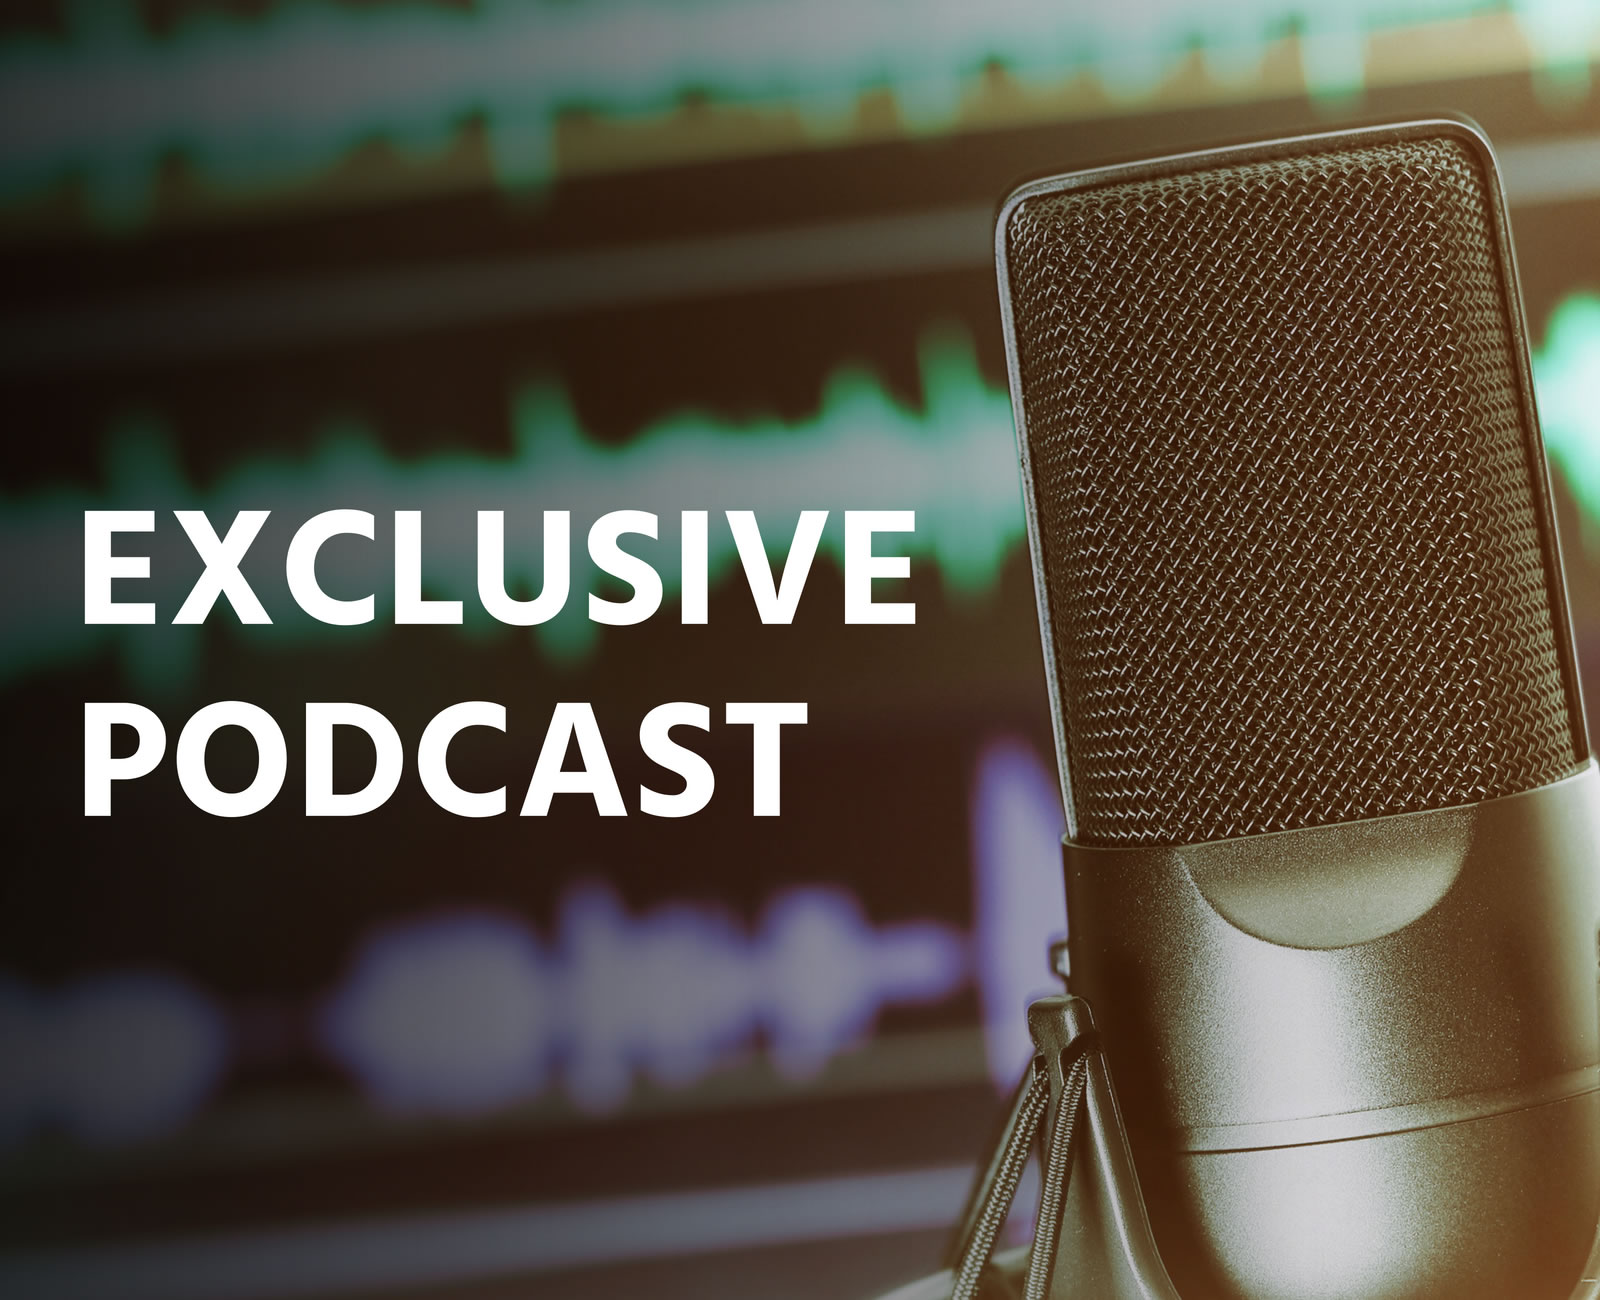 Modernizing your Customer Service Operations - A Podcast with Transport for London